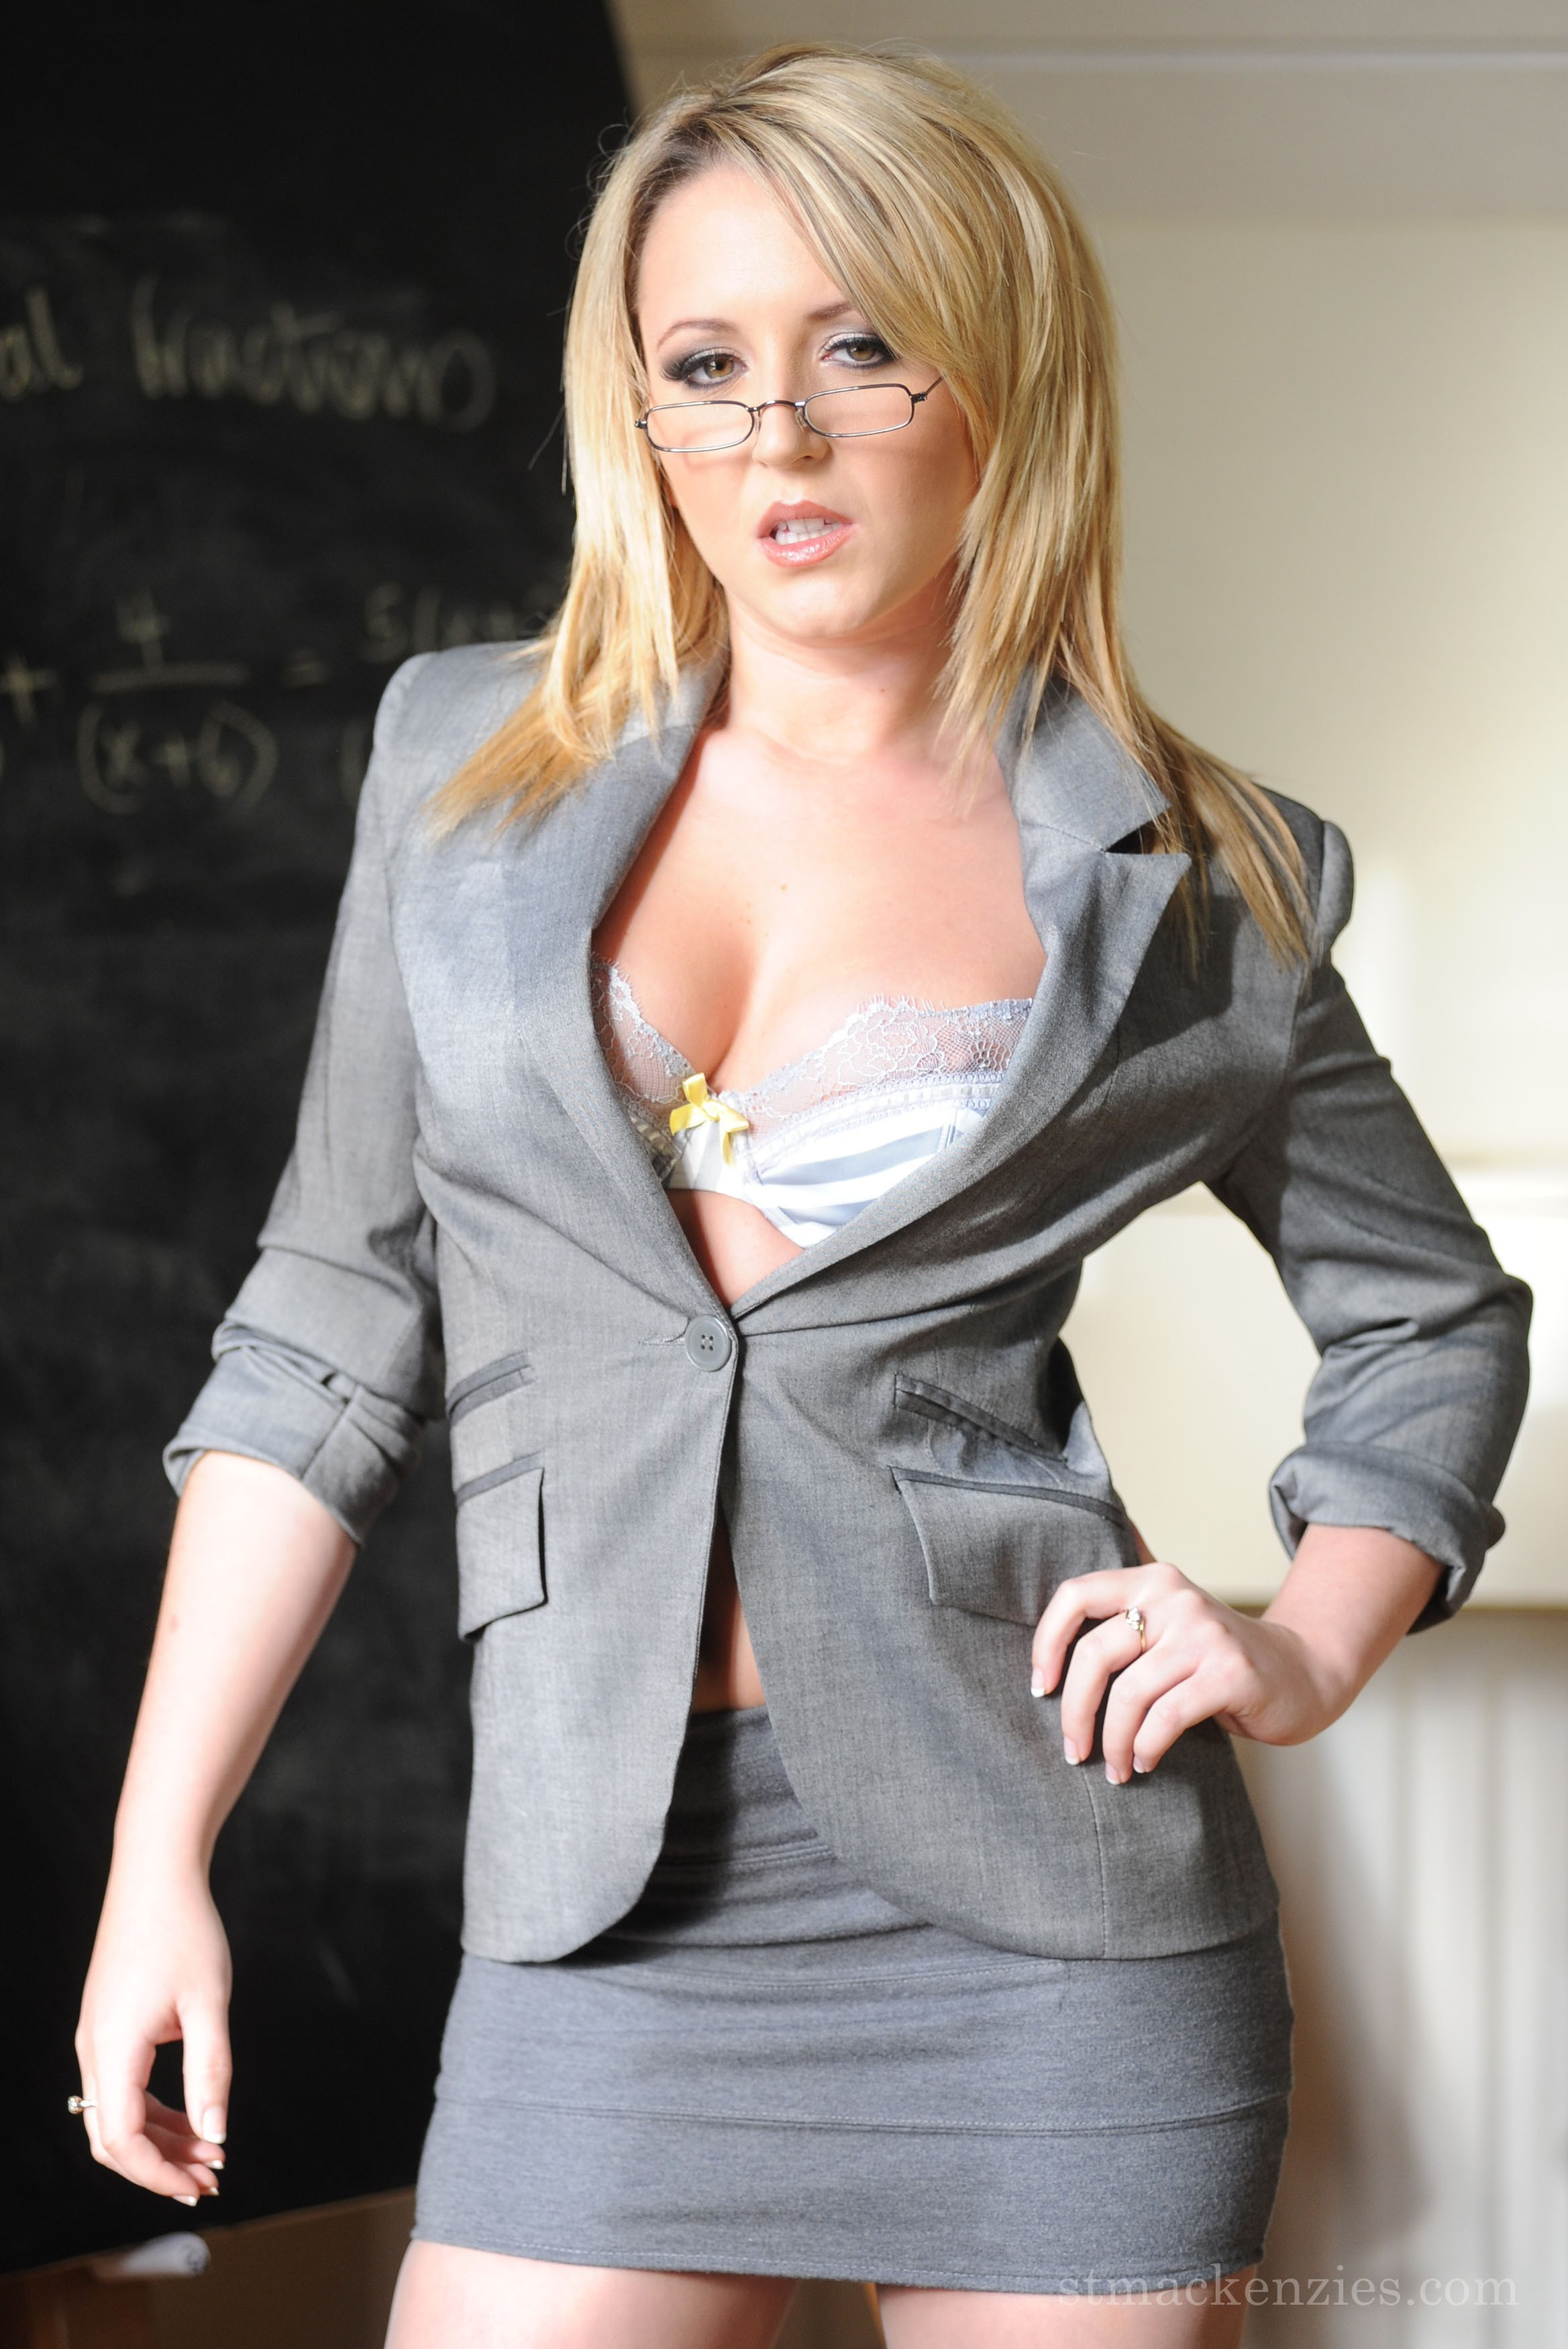 blondes woman pantyhose teachers HD Wallpaper